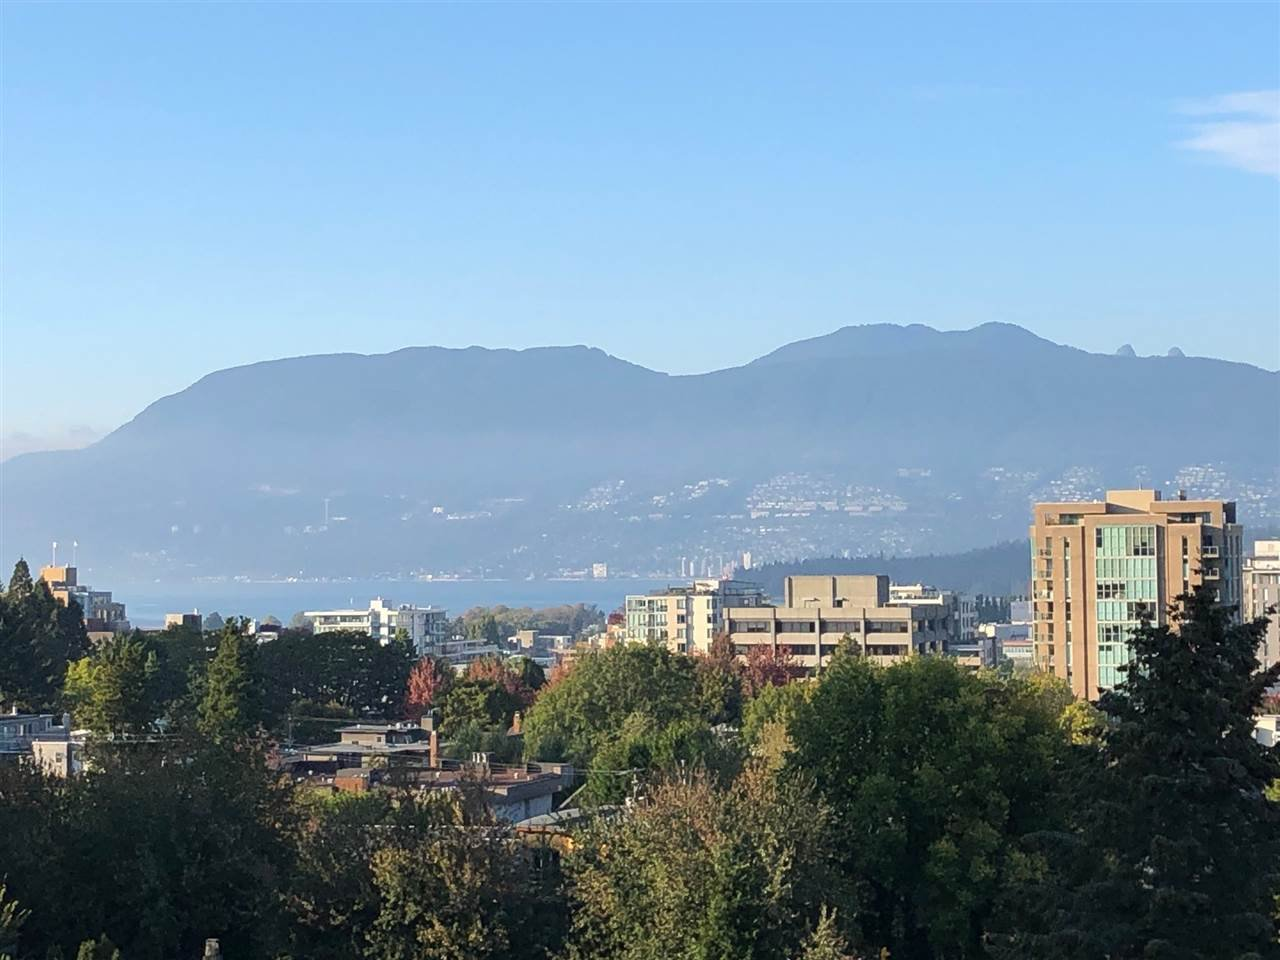 Main Photo: 1001 1566 W 13 AVENUE in Vancouver: Fairview VW Condo for sale (Vancouver West)  : MLS®# R2506534